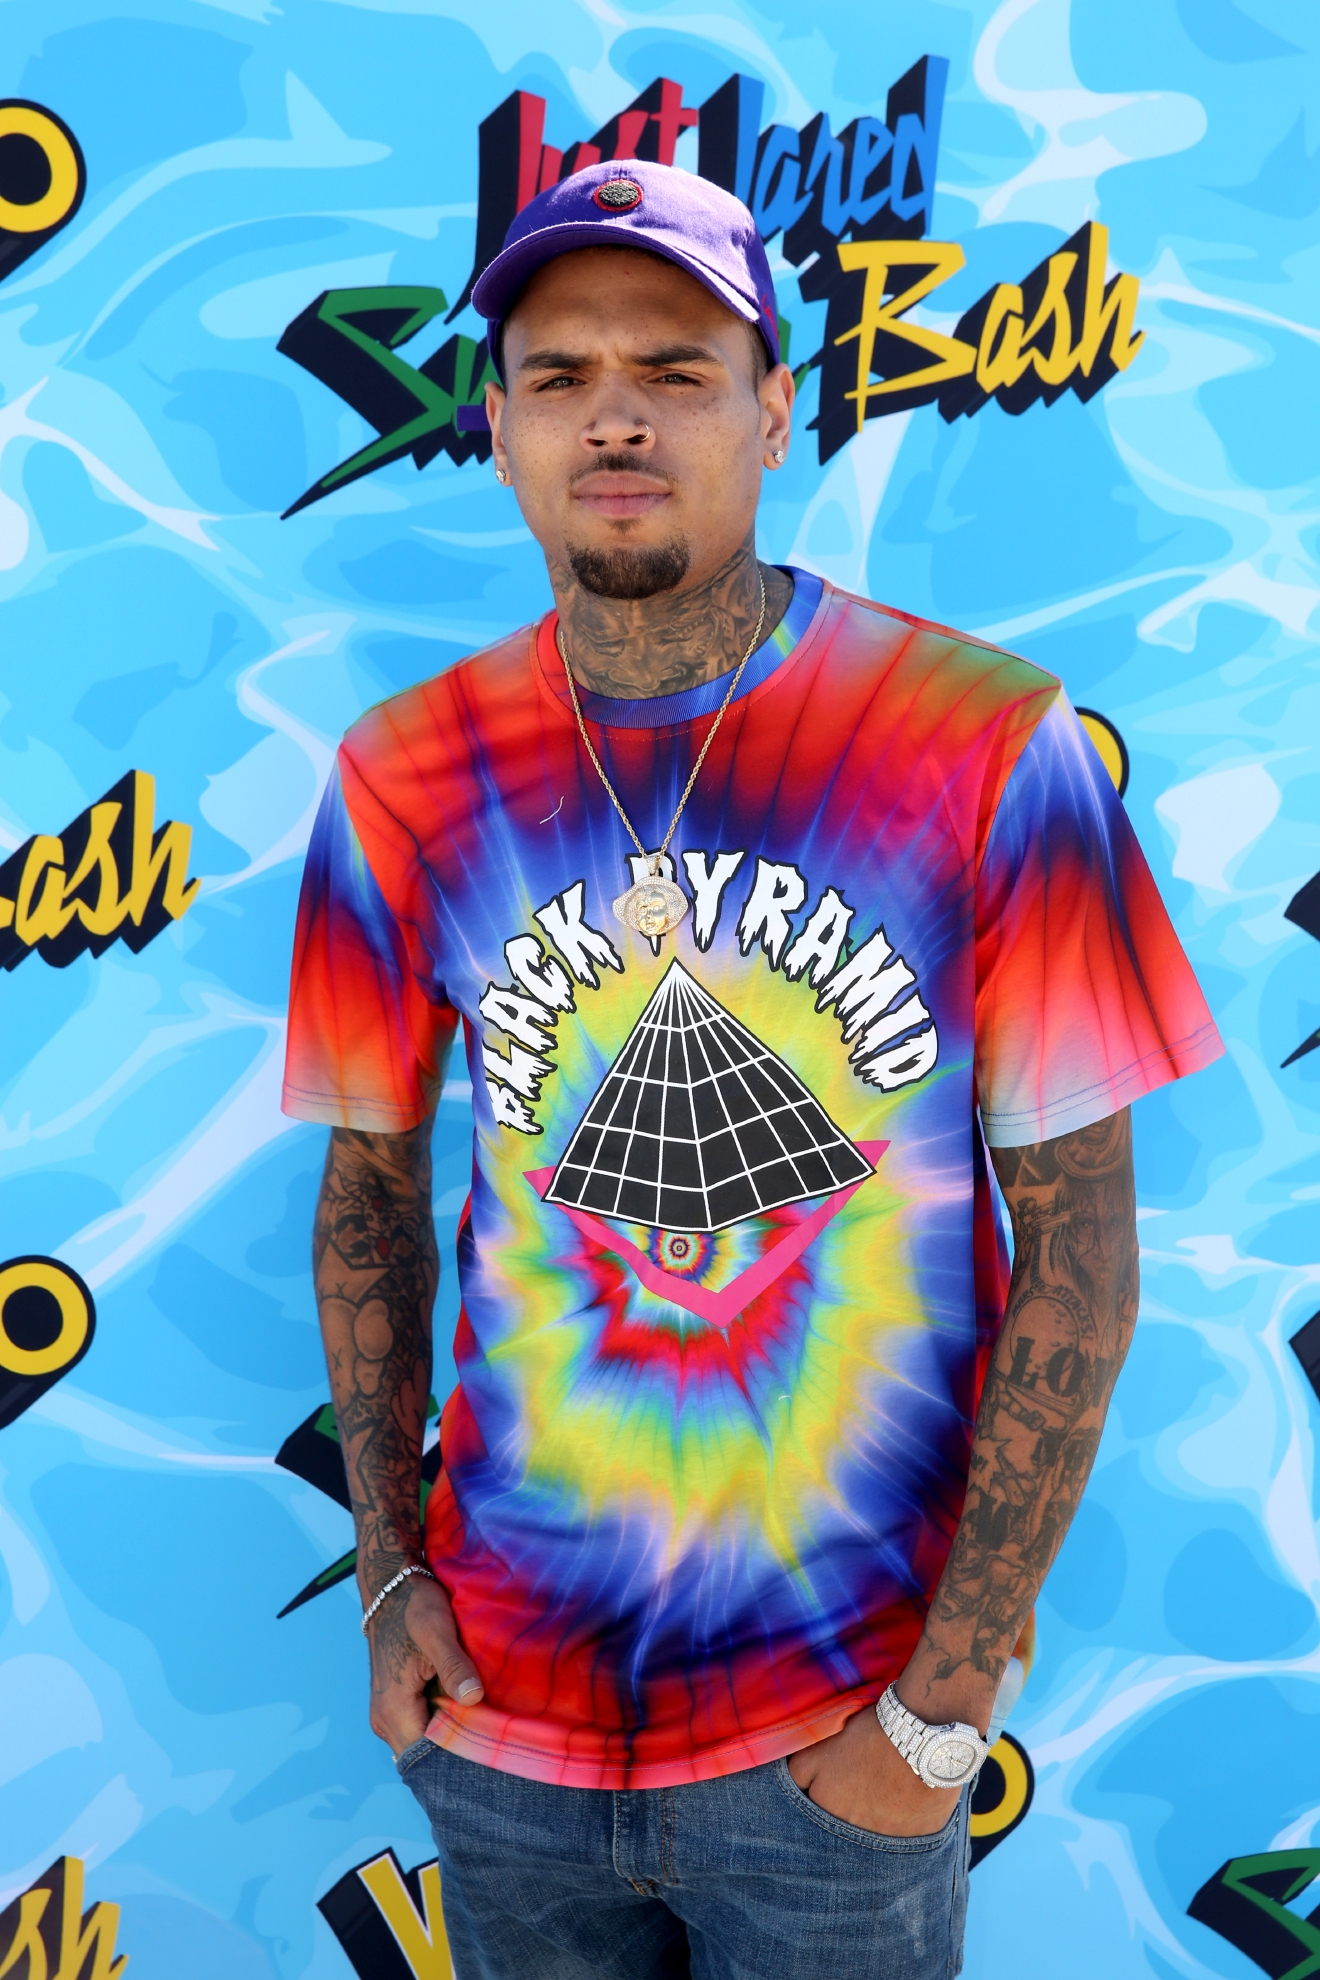 Chris Brown arrives at the Just Jared 4th Annual Summer Bash presented by Uno on Saturday, Aug. 13, 2016, in Beverly Hills, Calif. (Photo by Matt Sayles/Invision for Just Jared/AP Images)